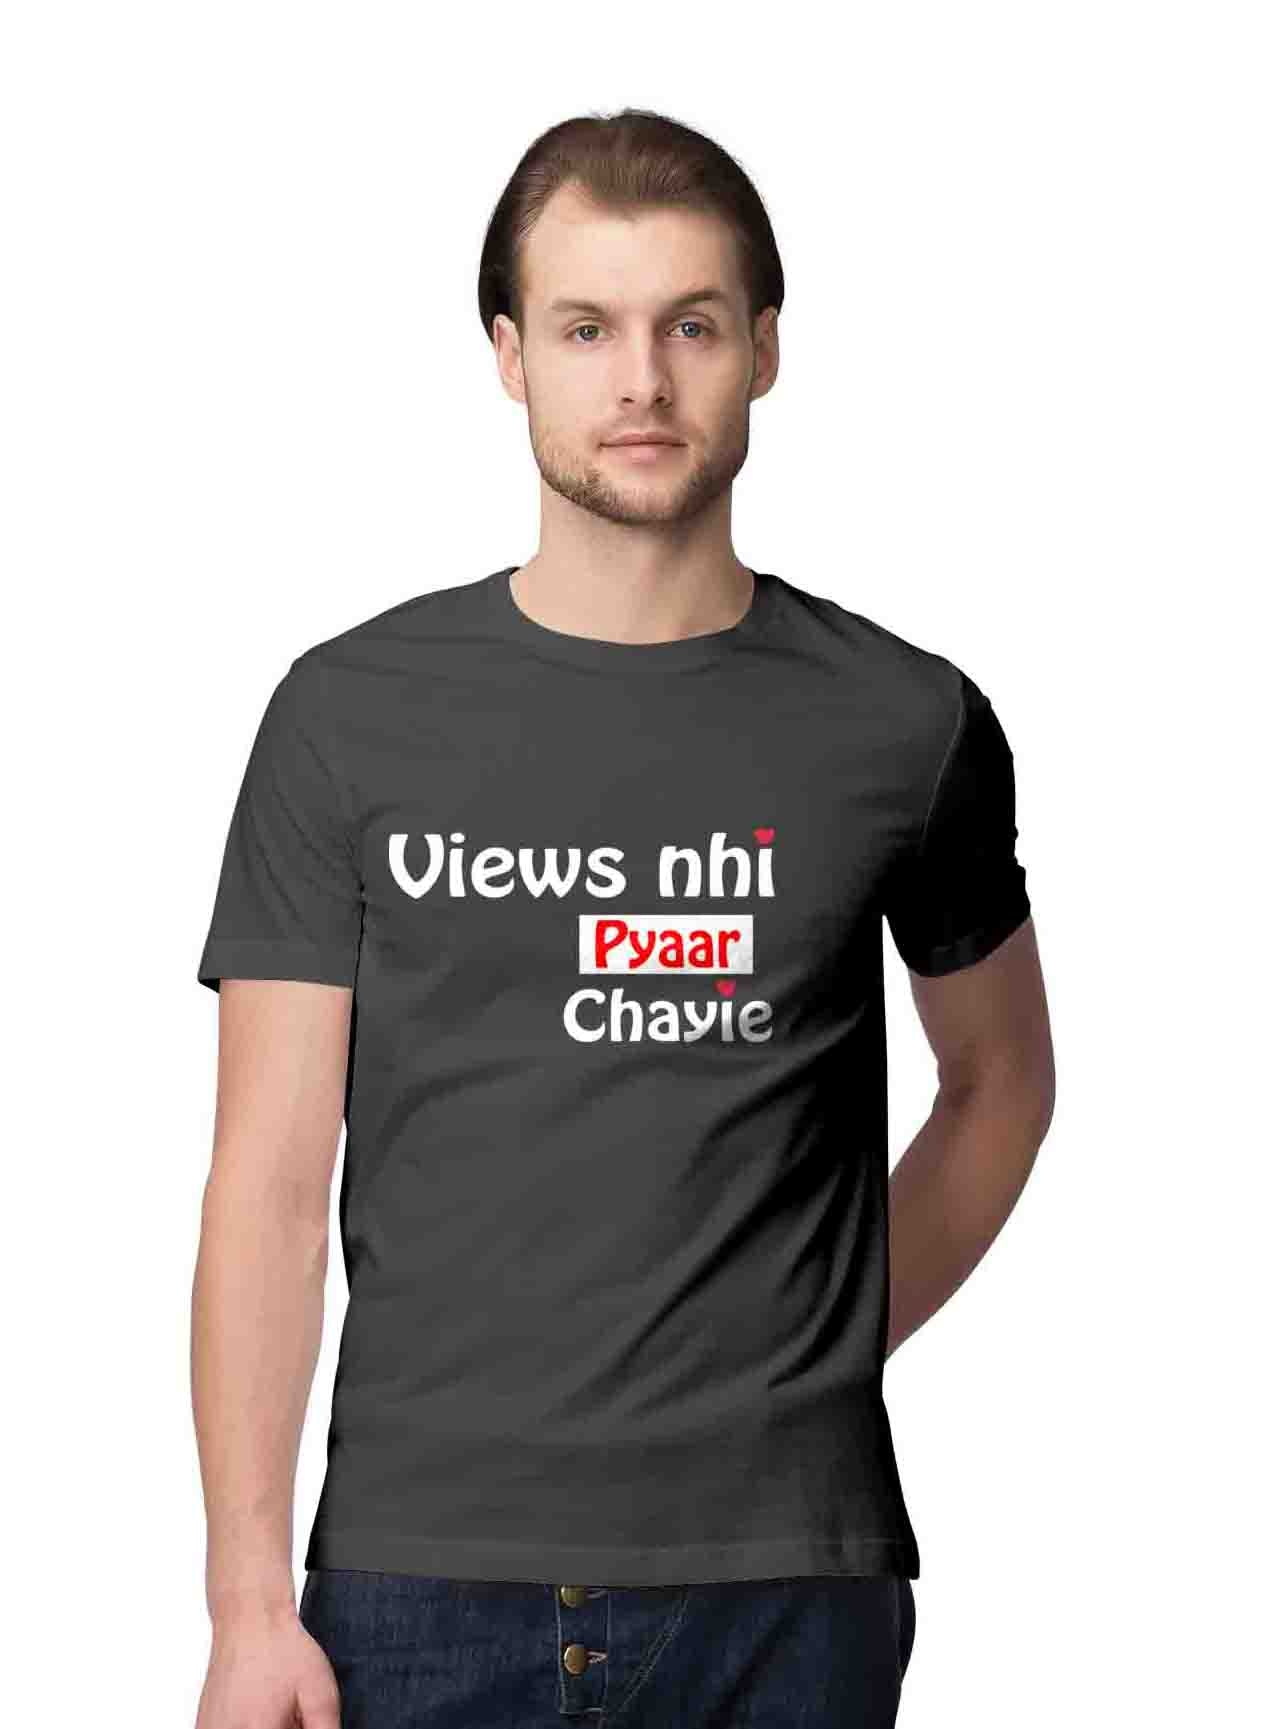 Views Nhi Pyaar Chayie - Youtube T-Shirt ©